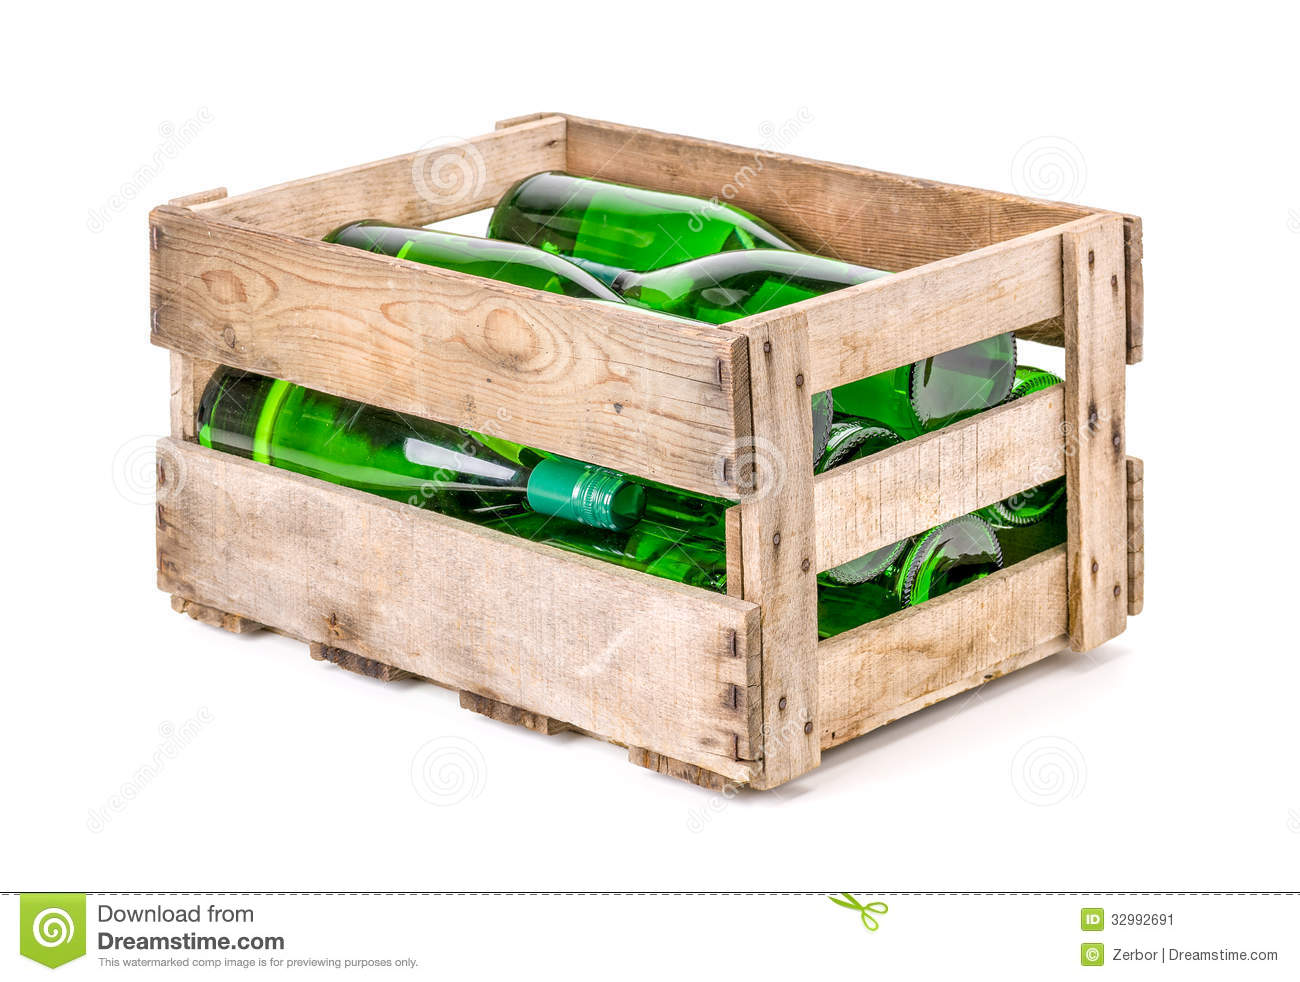 Vintage Wooden Wine Crate Filled With Wine Bottles Stock